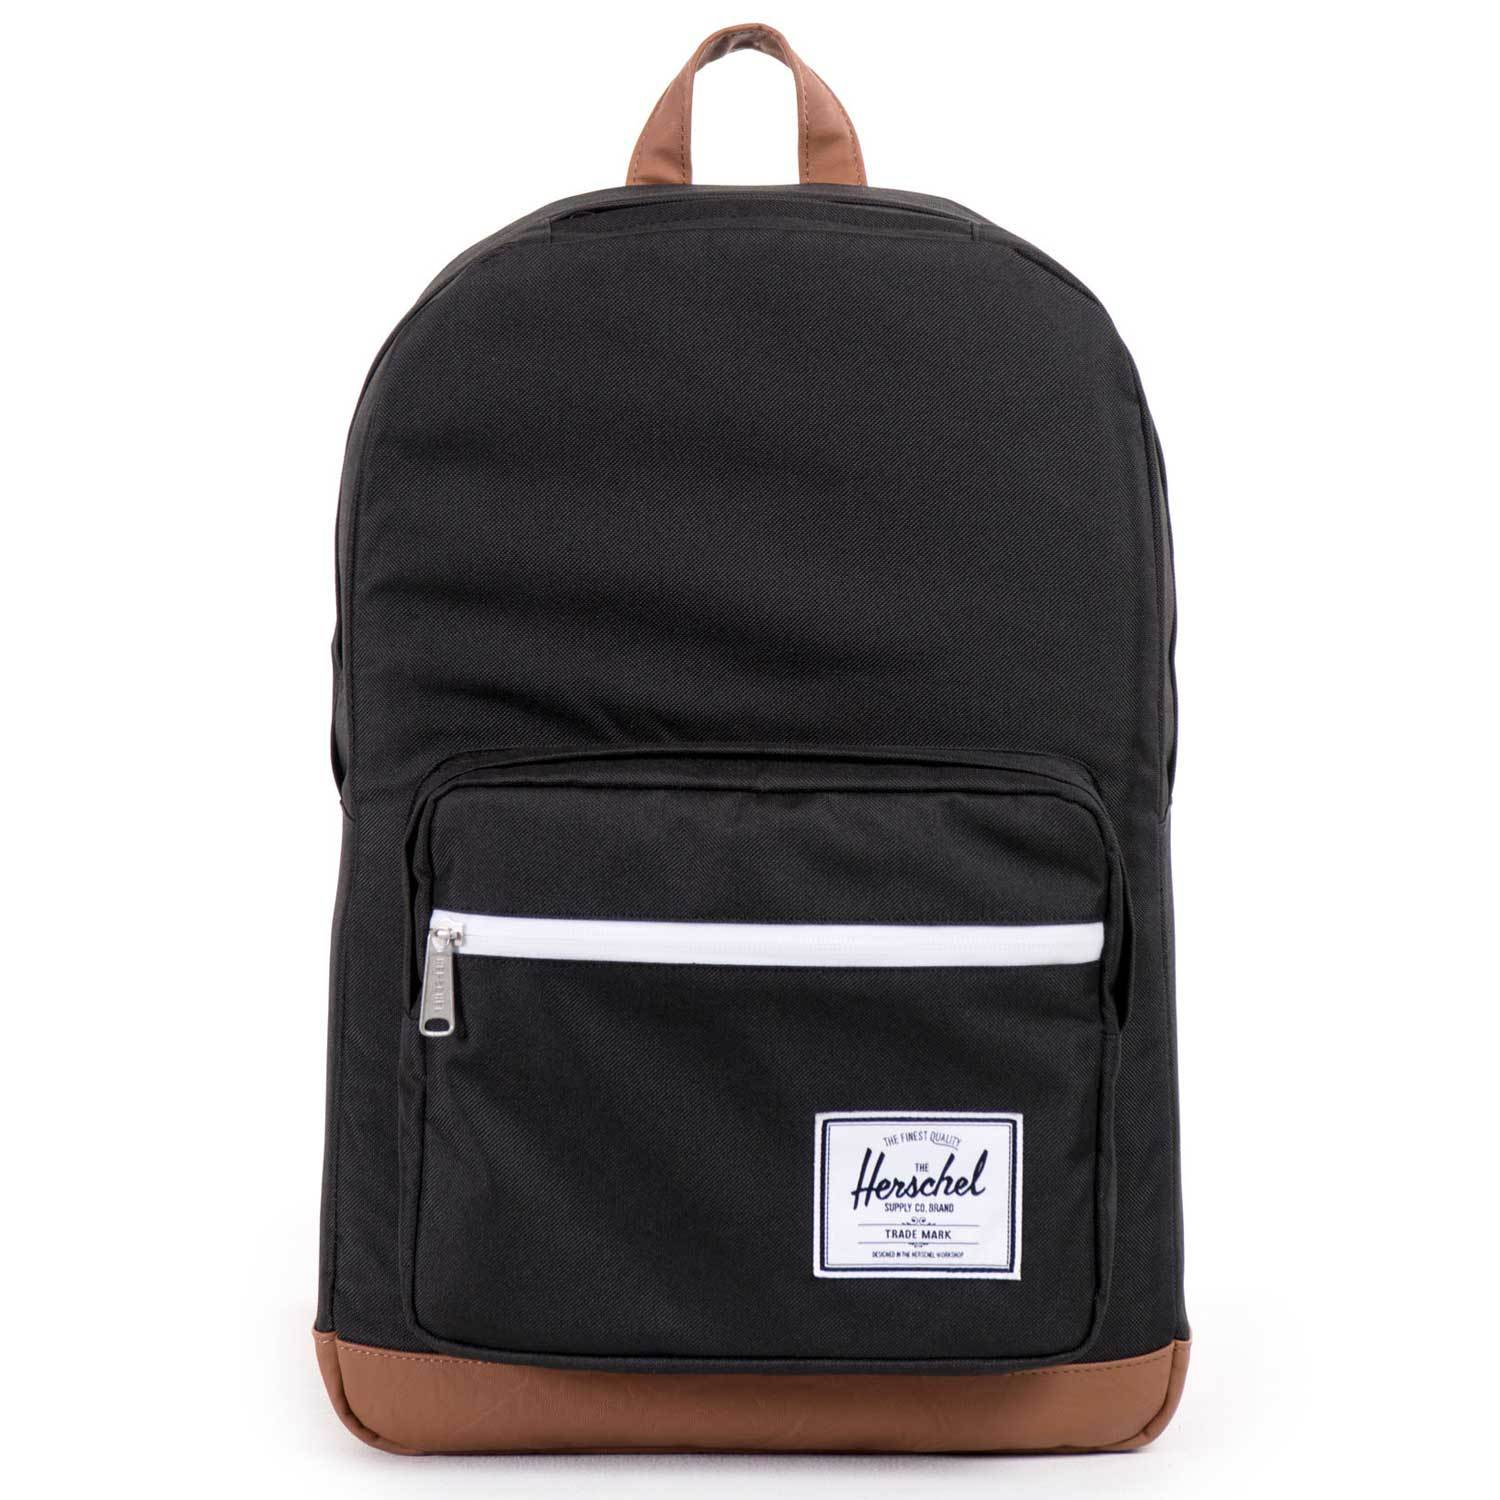 Men's Herschel Supply Co Pop Quiz Backpack The Herschel Supply Pop Quiz is one of their most popular backpack silhouettes. It's multiple storage pockets and organizers cater to all your work or school needs while staying true to the Hershel Supply signature style. Fully lined with their signature coated cotton poly fabric. Fully padded fleece lined 15' laptop sleeve pocket. Front pocket with internal mesh organizers and key clip. Waterproof zipper detail. Reinforced bottom. Fleece lined sunglasses pocket. Internal media pocket. Men's Herschel Supply Co Pop Quiz Backpack.